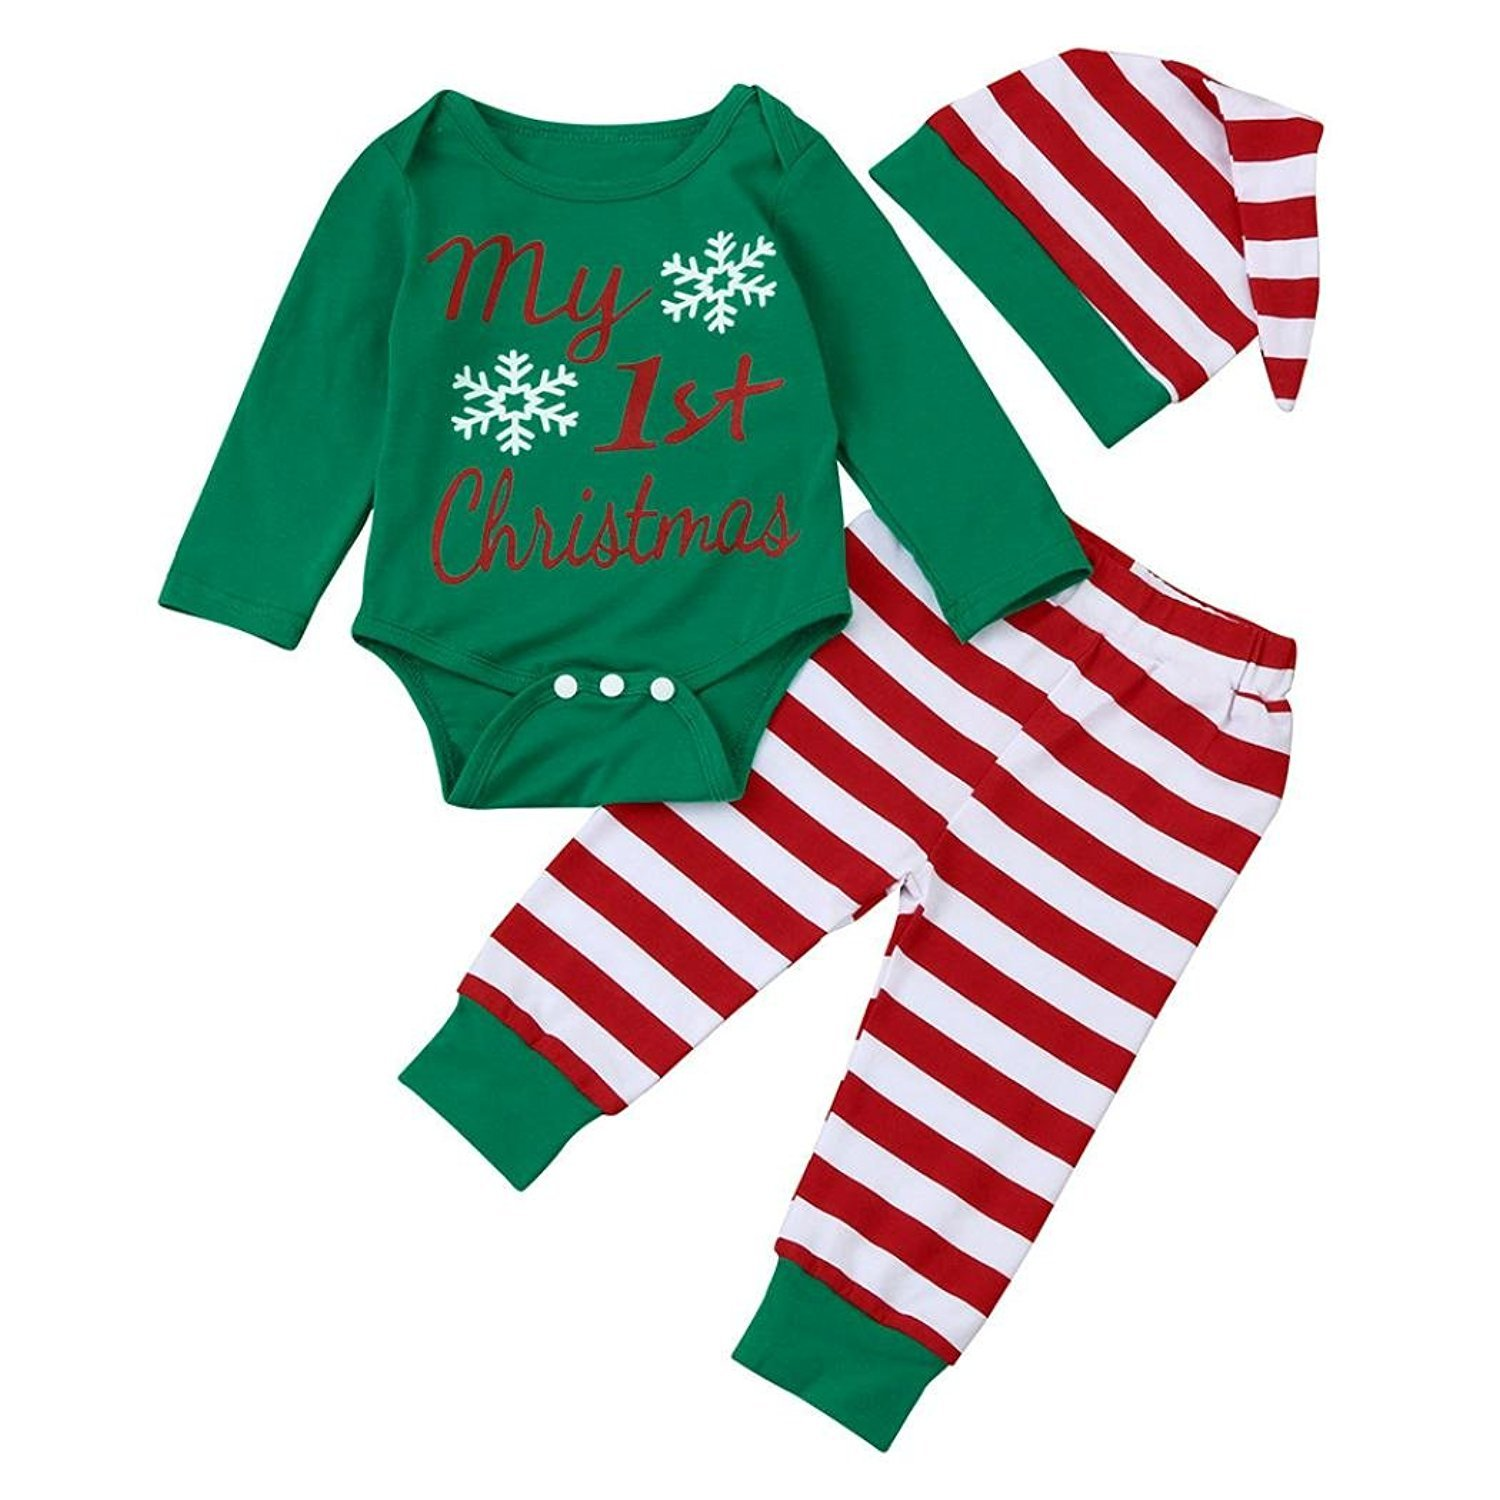 Webla 0-18 Month Baby, Newborn Infant Baby Boy Girl Letter My 1st Christmas Romper Tops+Striped Pants+Hat Christmas Outfits Set